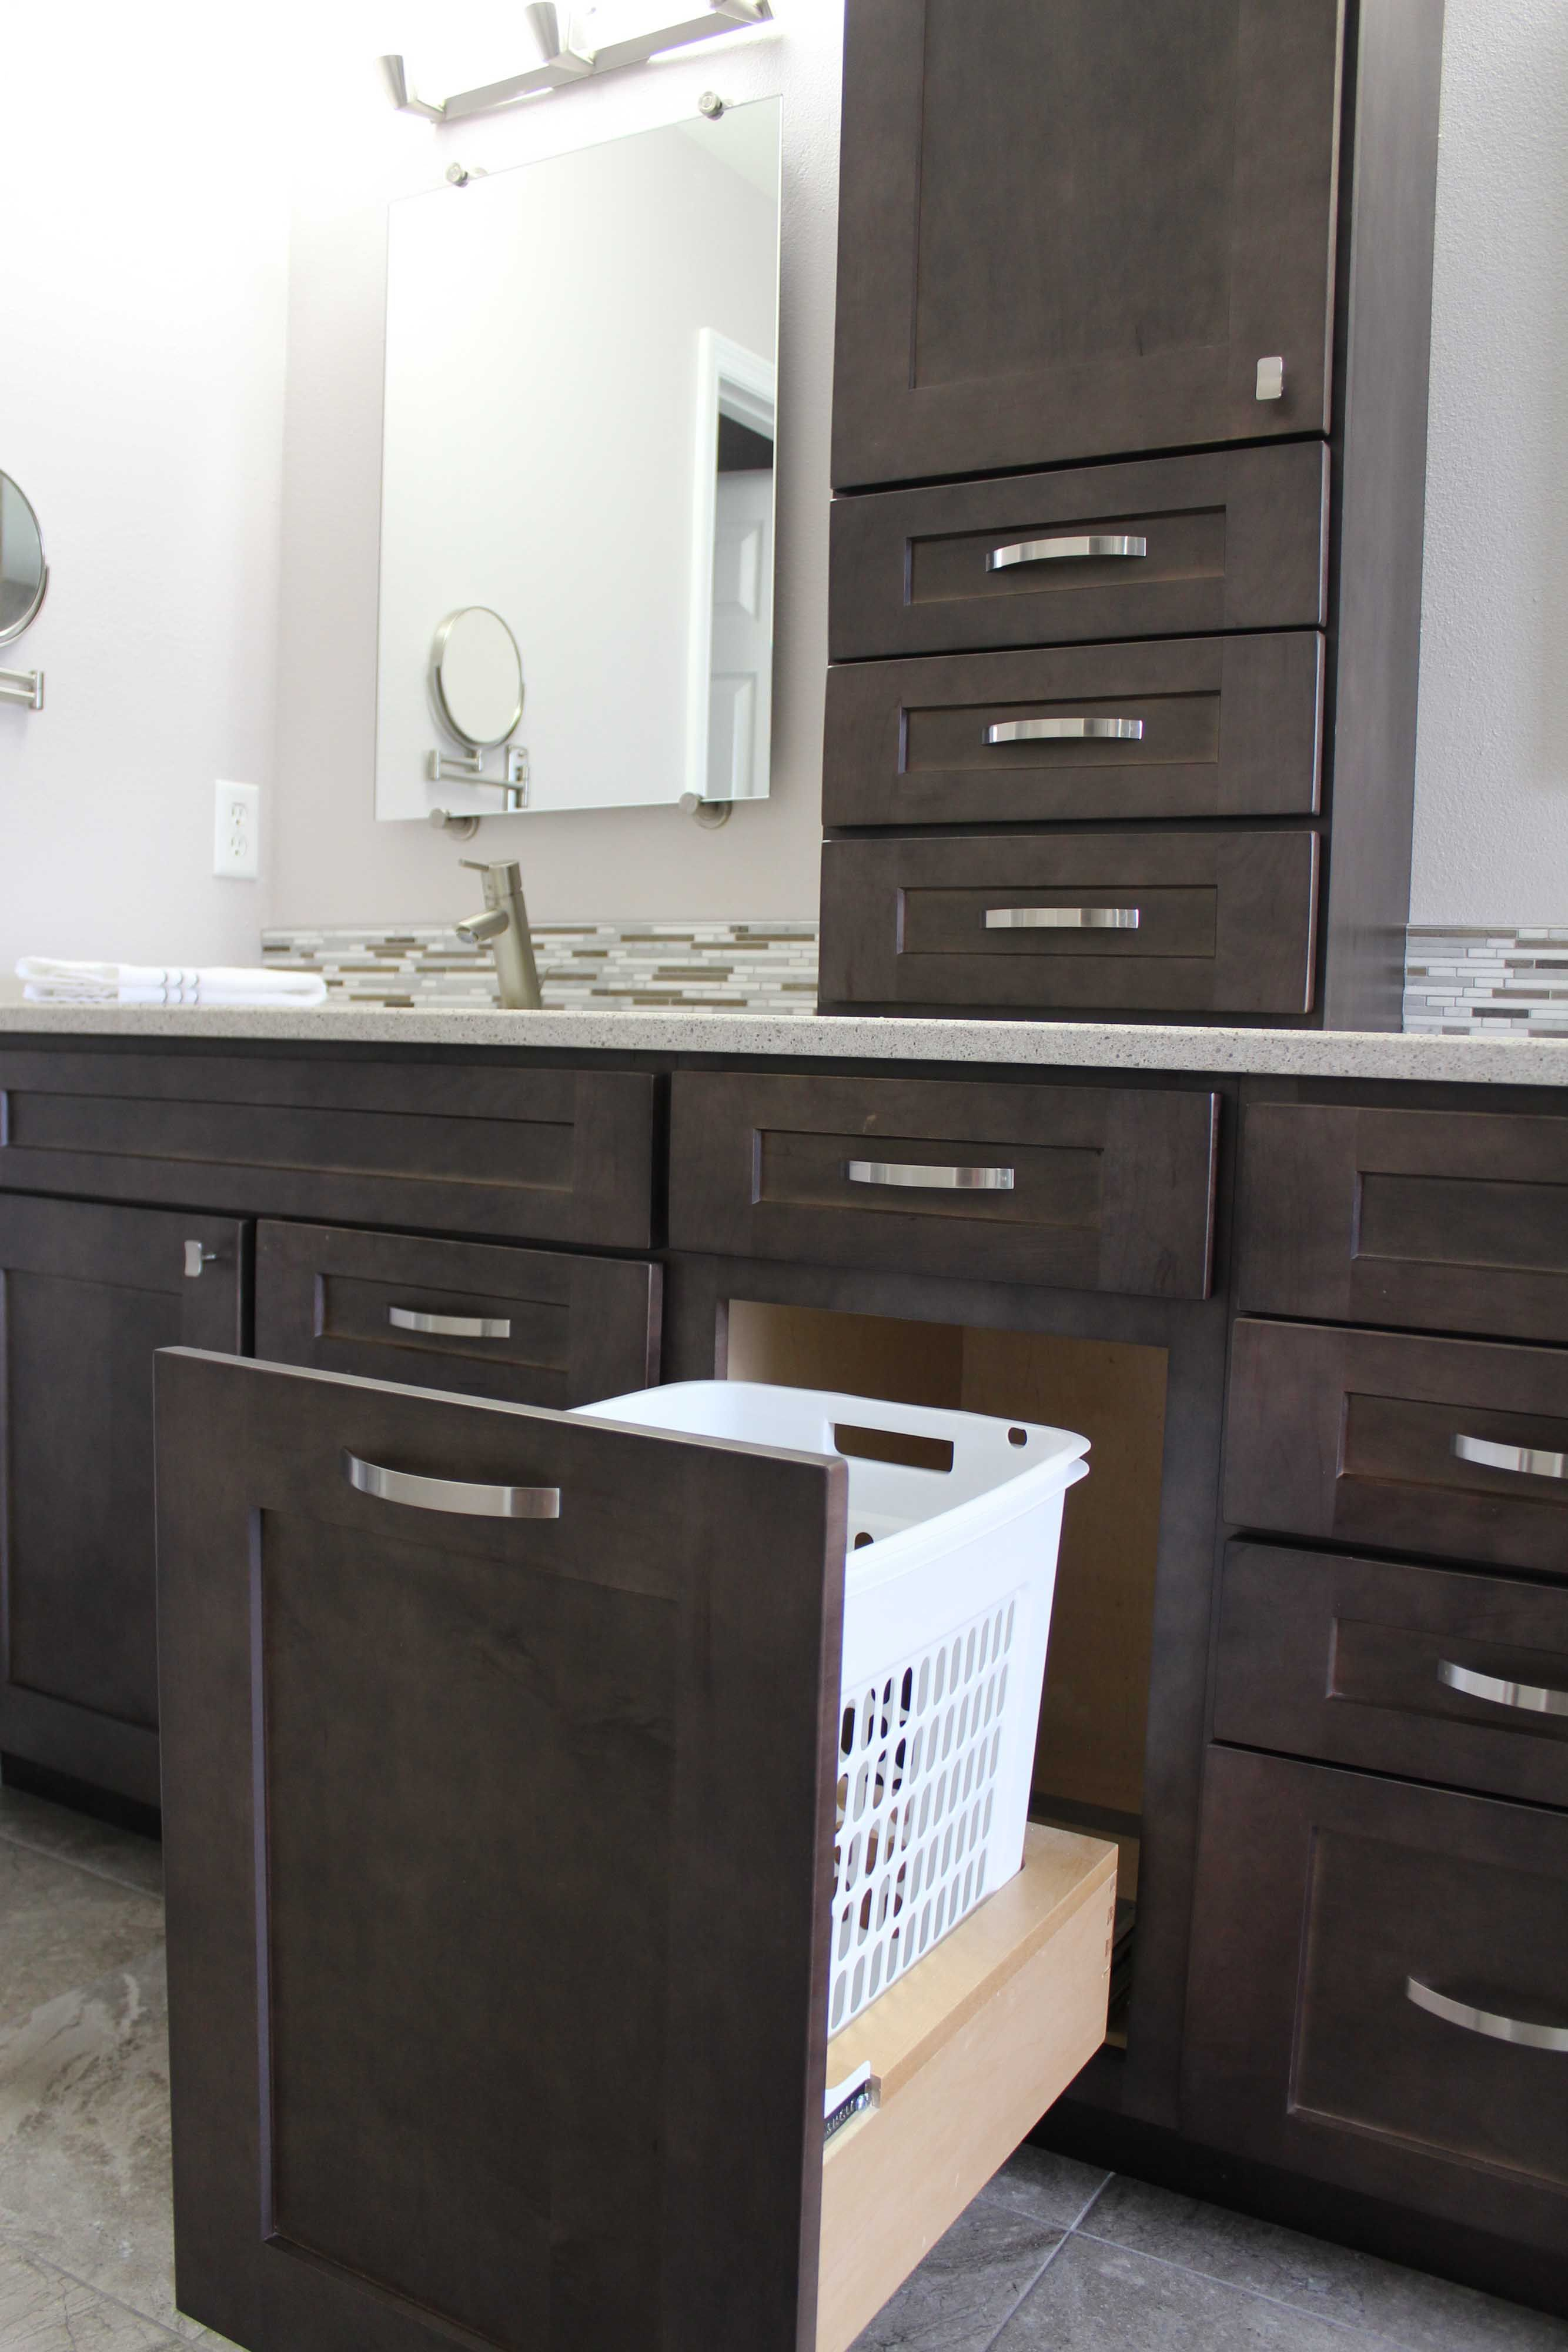 The Picture Features Shaker Ii Maple Charcoal Cabinets Shaker Cabinets Is Indeed A Shaker Style Kitchen Cabinets Shaker Style Kitchens Kitchen Cabinet Styles